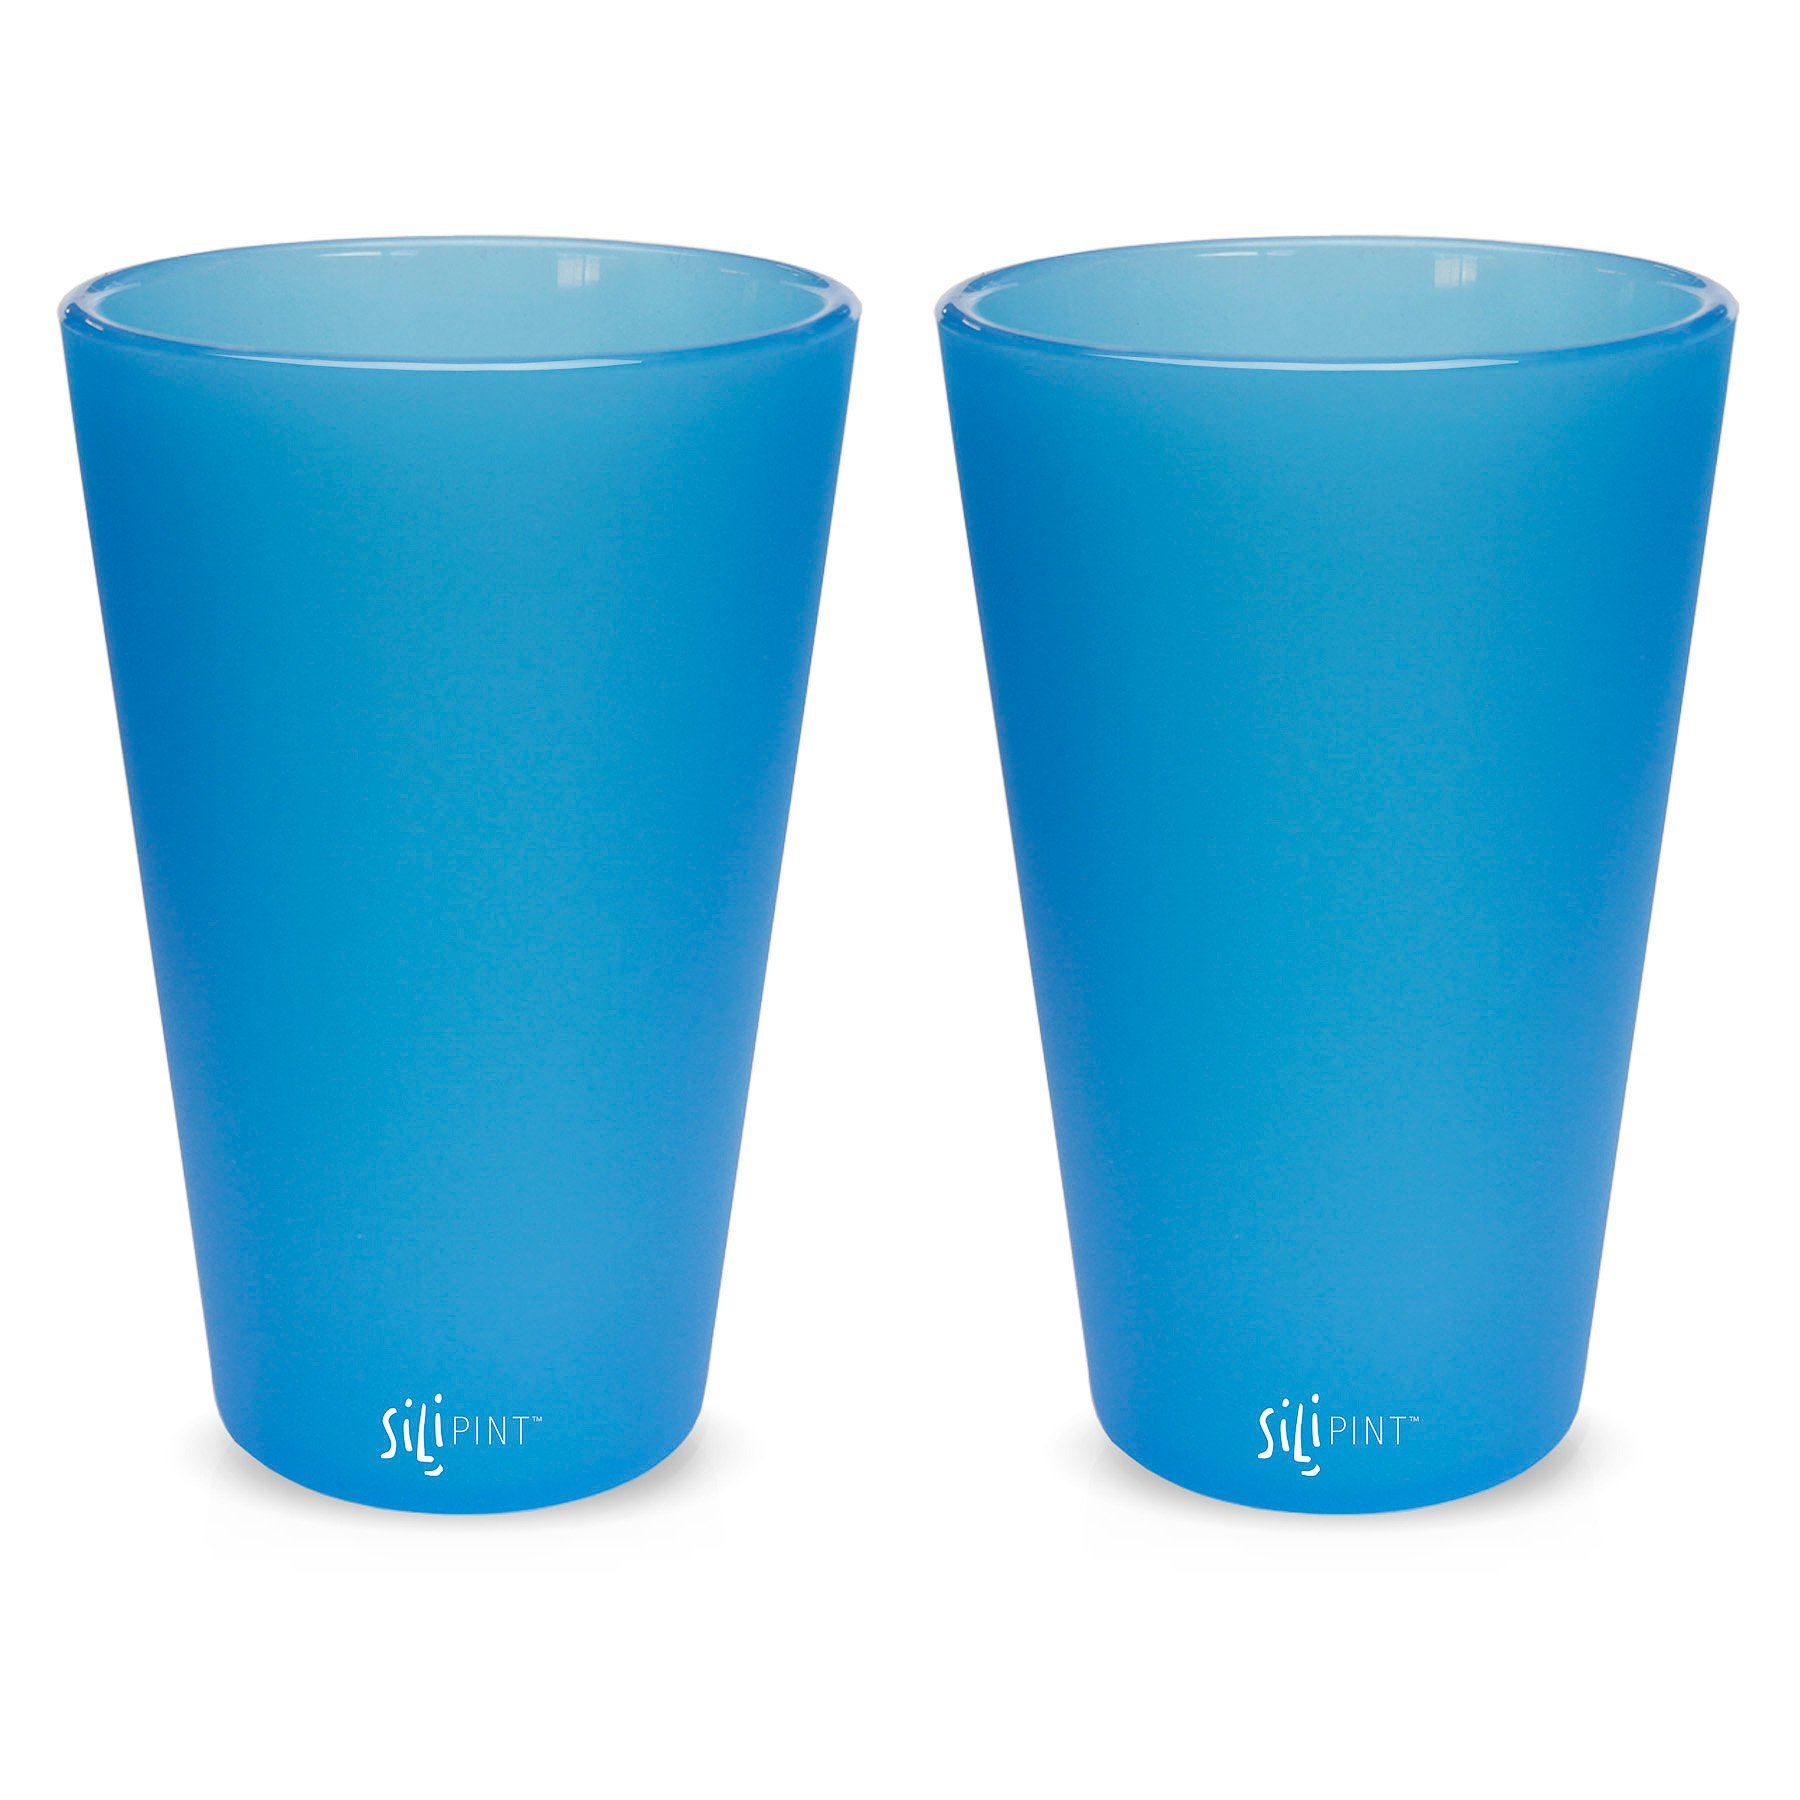 2-Pack, Mountain Marble Silipint Silicone Pint Glass Set Unbreakable Silicone Cup Drinkware Patented Shatter-proof